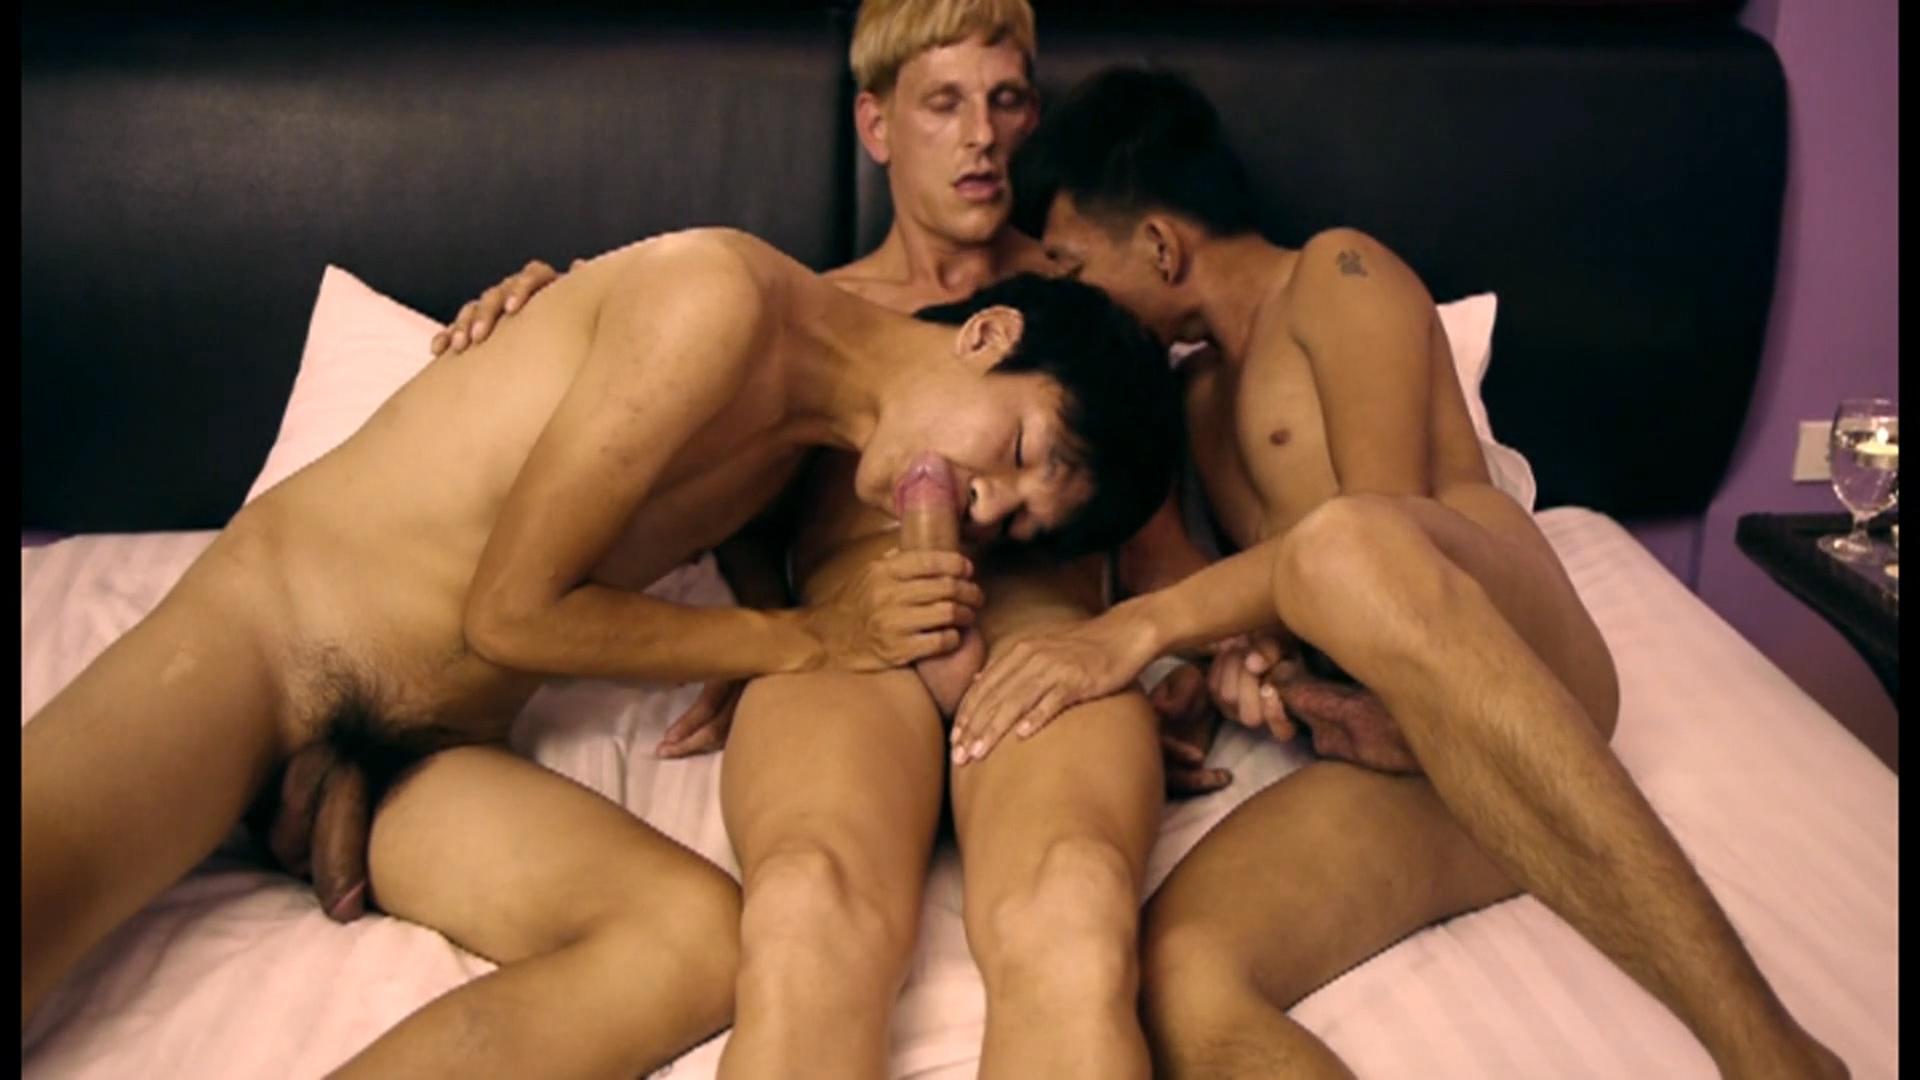 Thomas, Dominic and Jason - DoctorTwink Teen slut nude group selfies